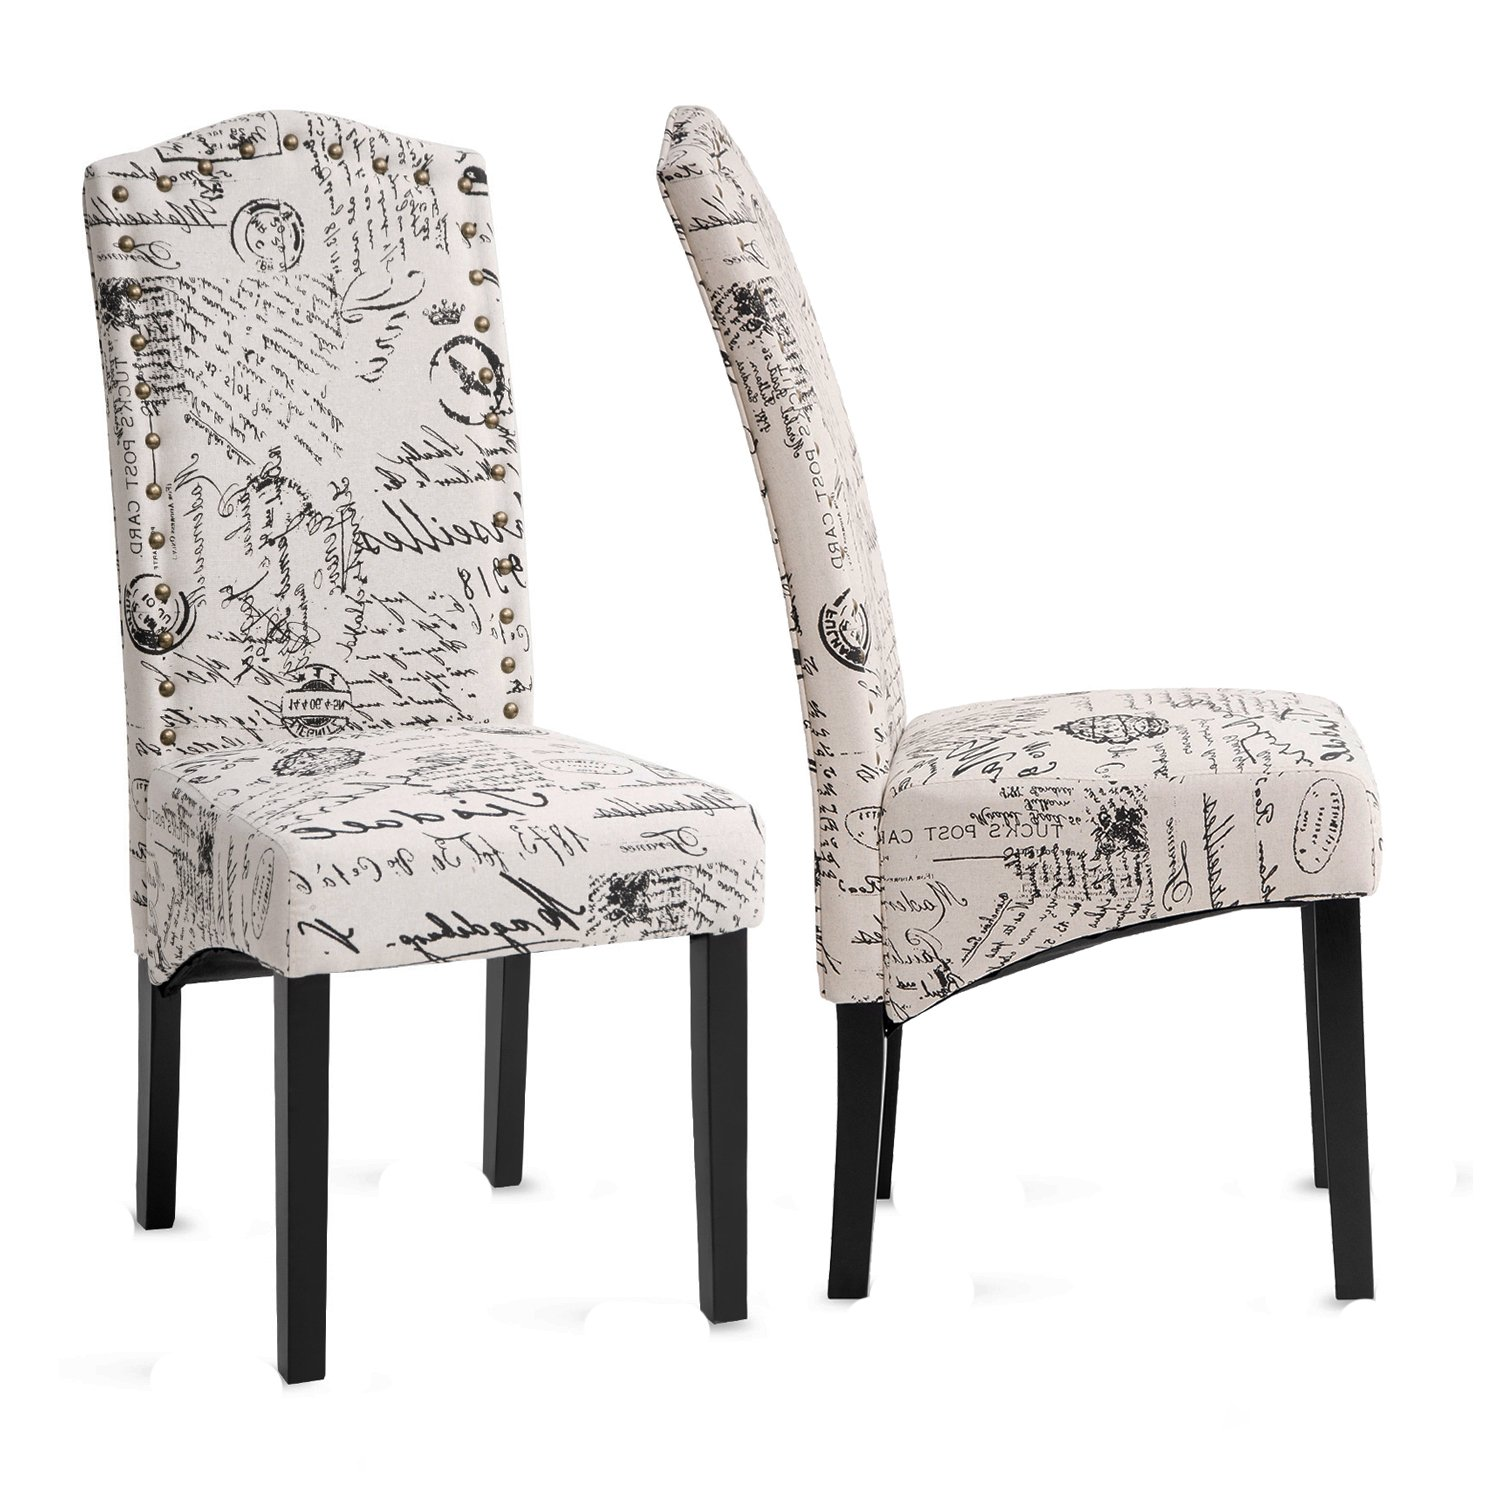 Merax PP036312AAA Dining Script Fabric Accent Chair with Solid Wood Legs, Set of 2 by Merax (Image #1)